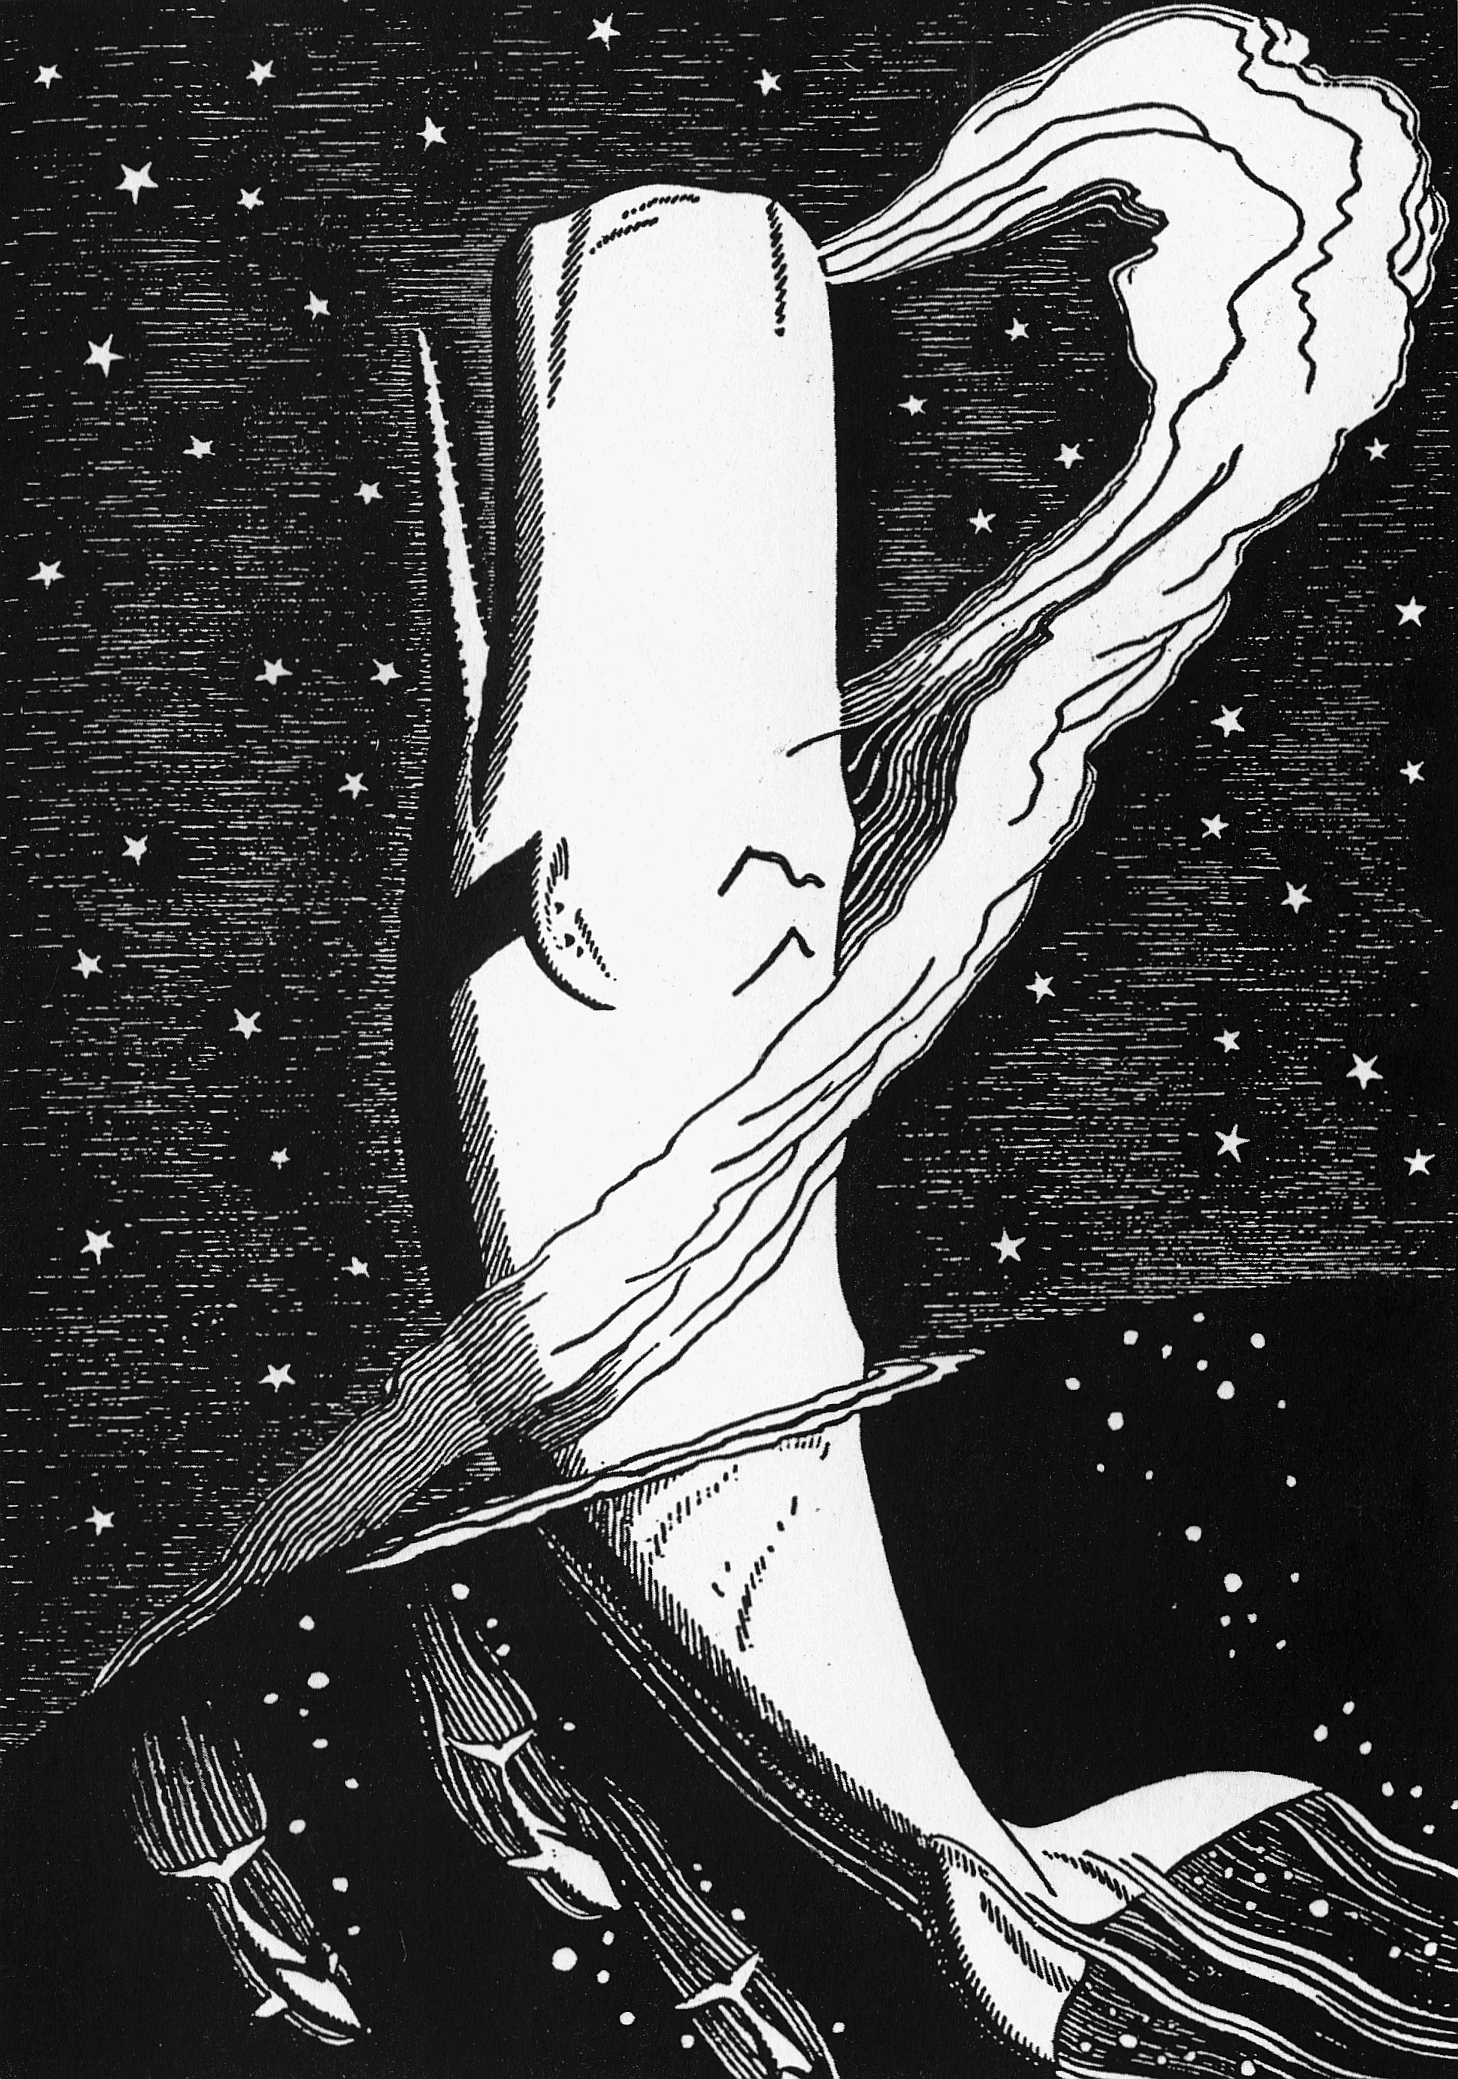 Rockwell Kent, Illustration from Moby-Dick. Black ink on paper, ca. 1929.